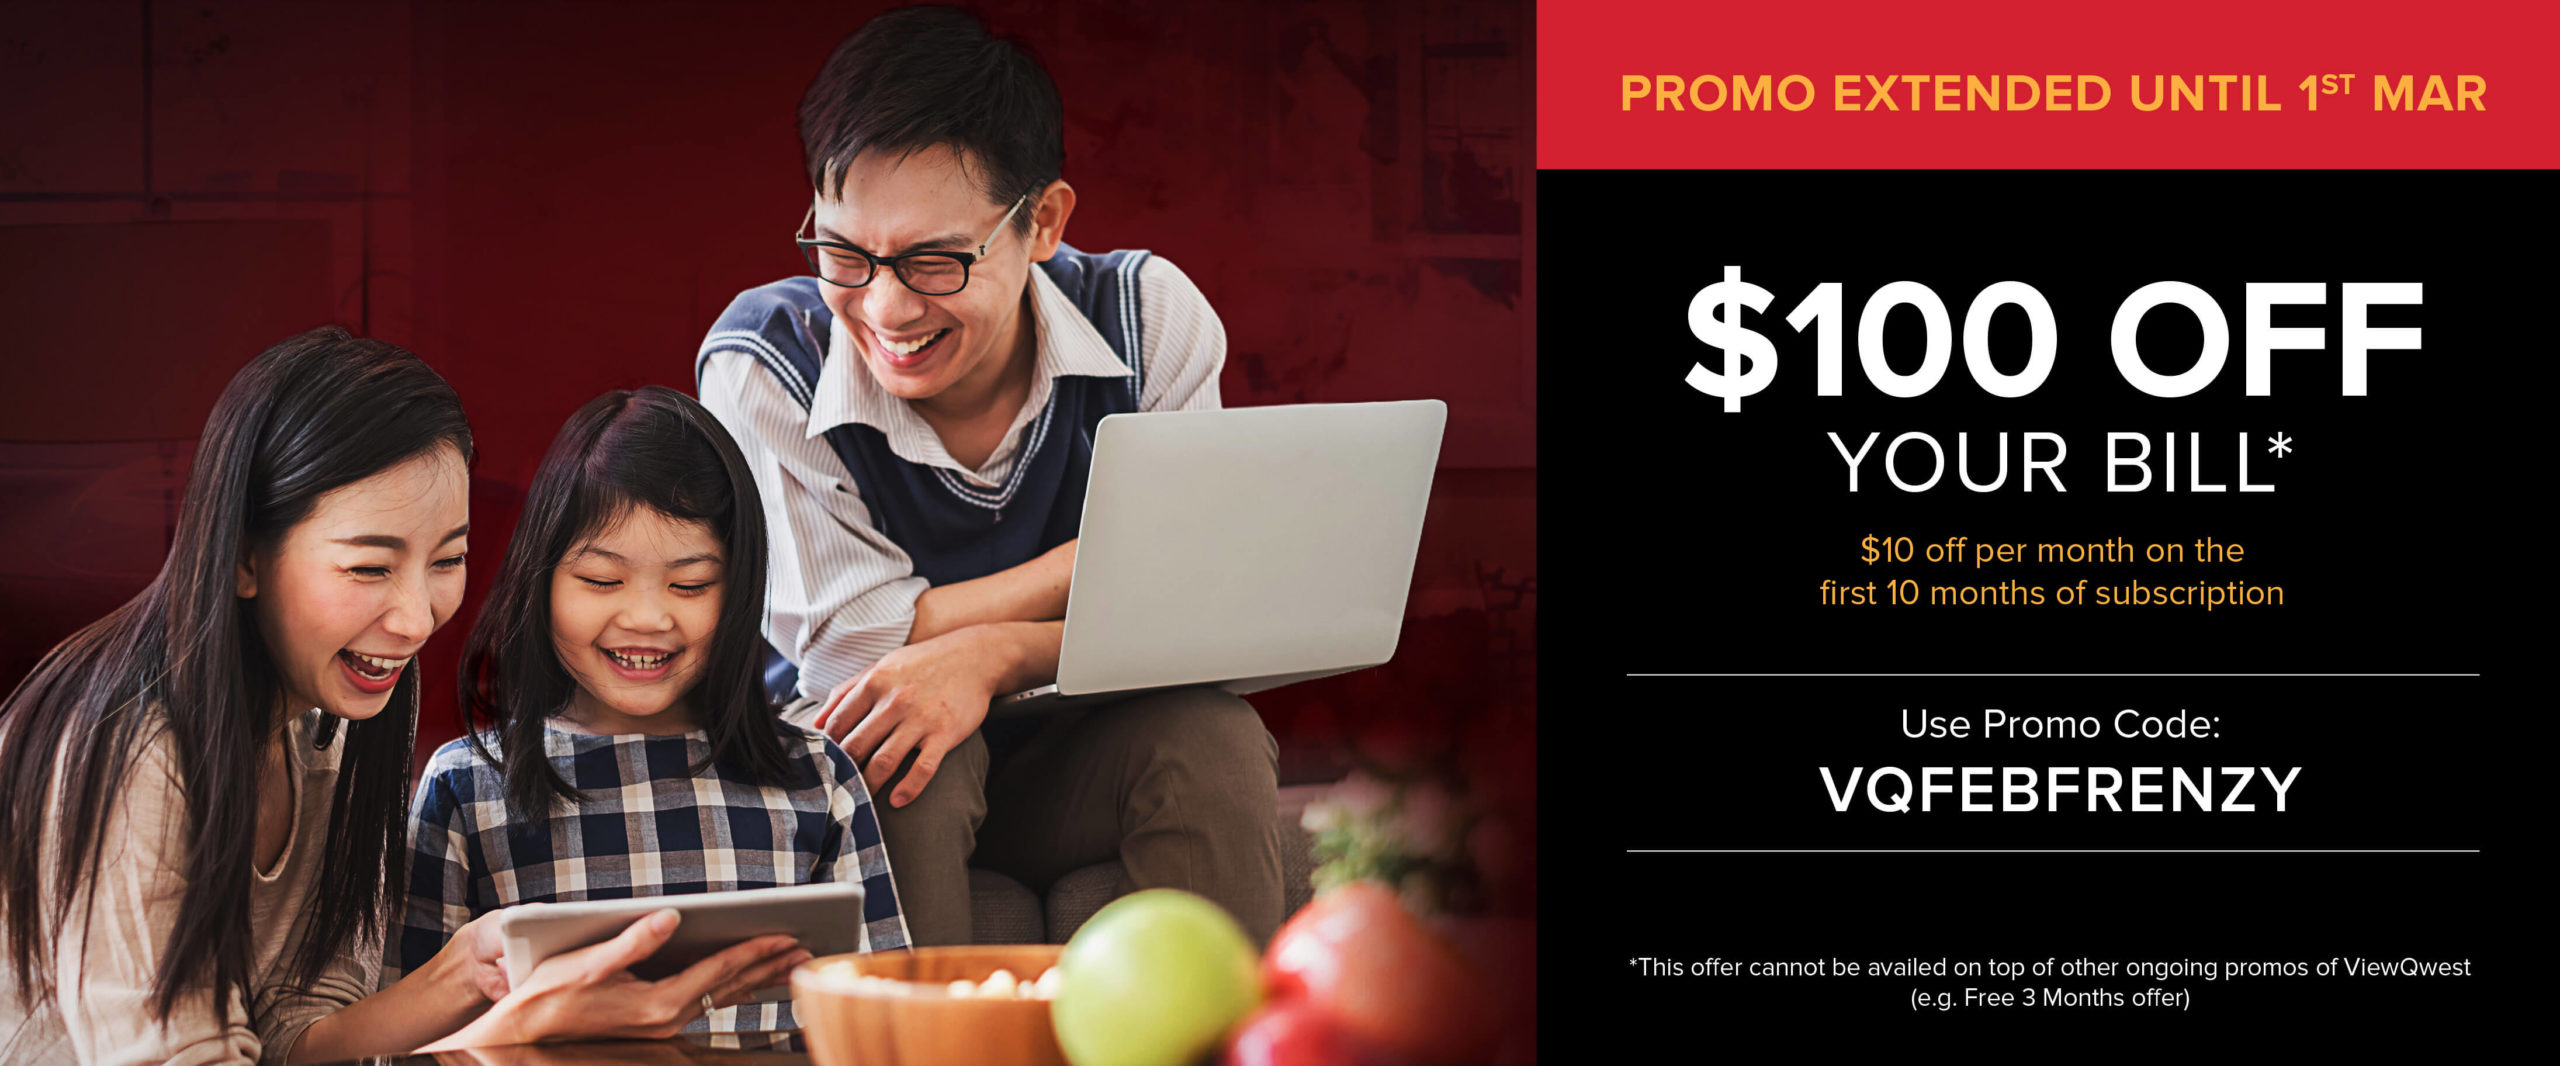 Feb Promo P2 Landing Page Banner Ext